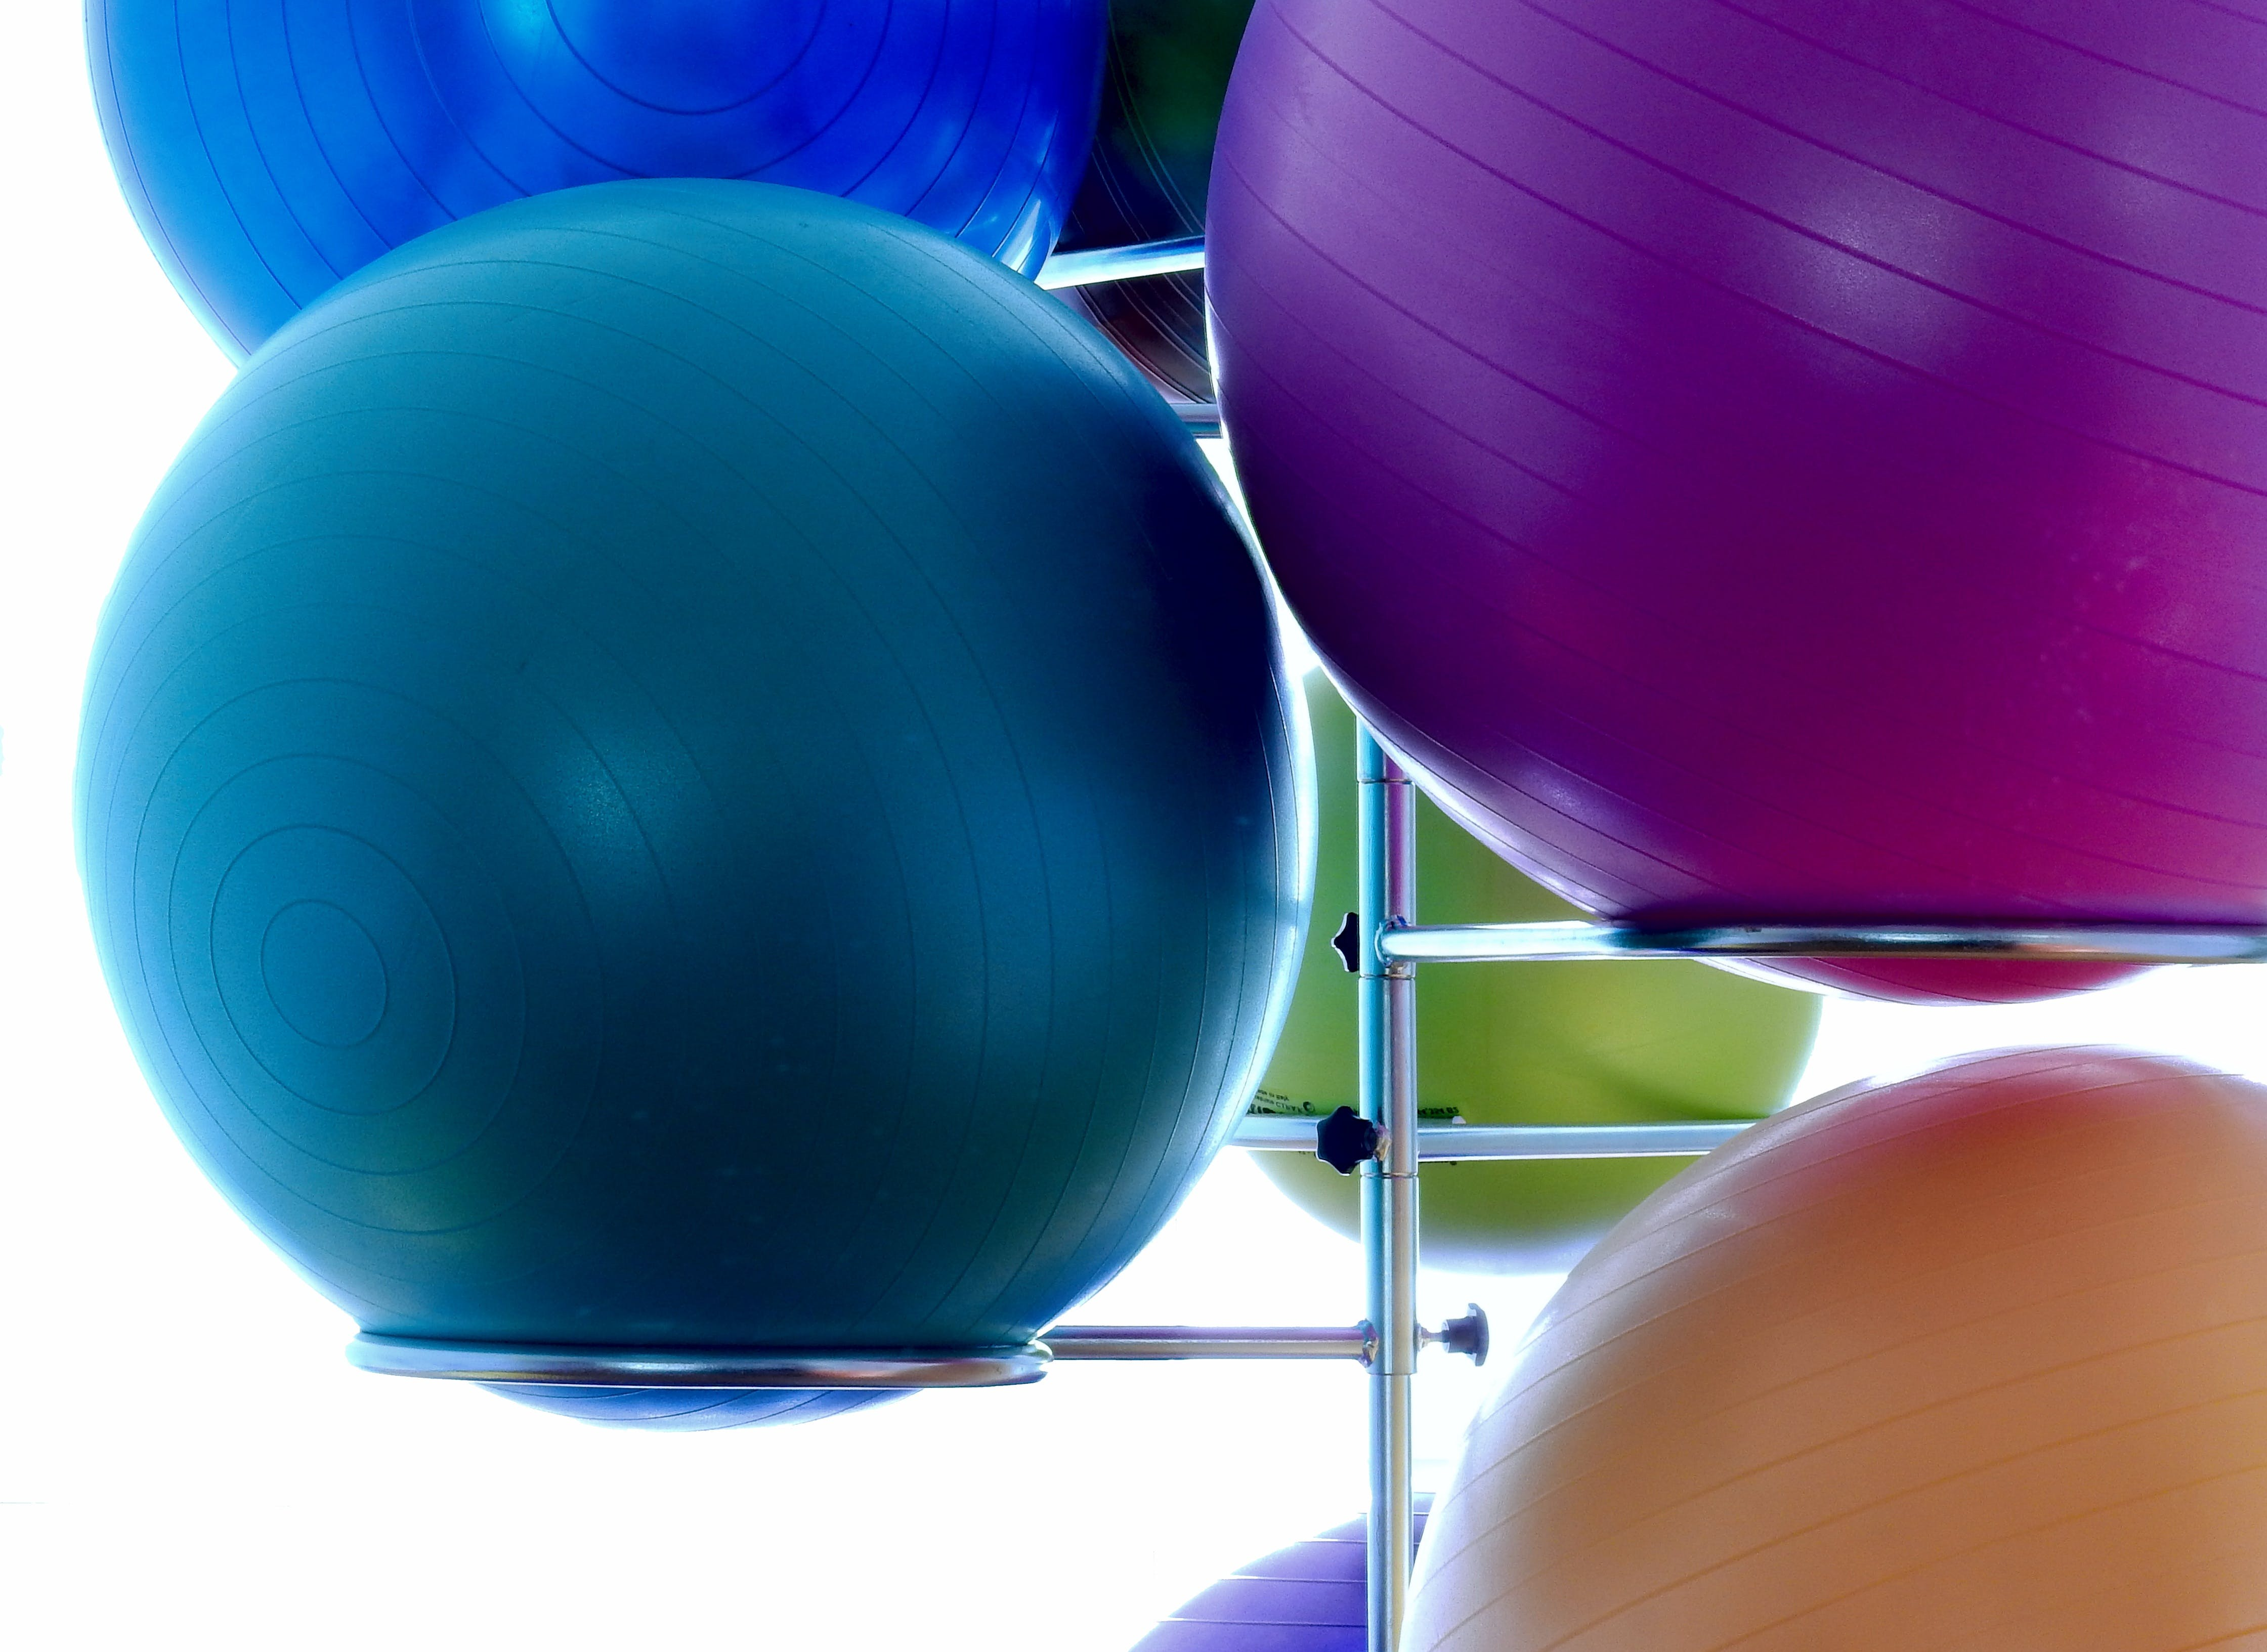 Blue Exercising Ball on Stainless Steel Exercising Ball Rack